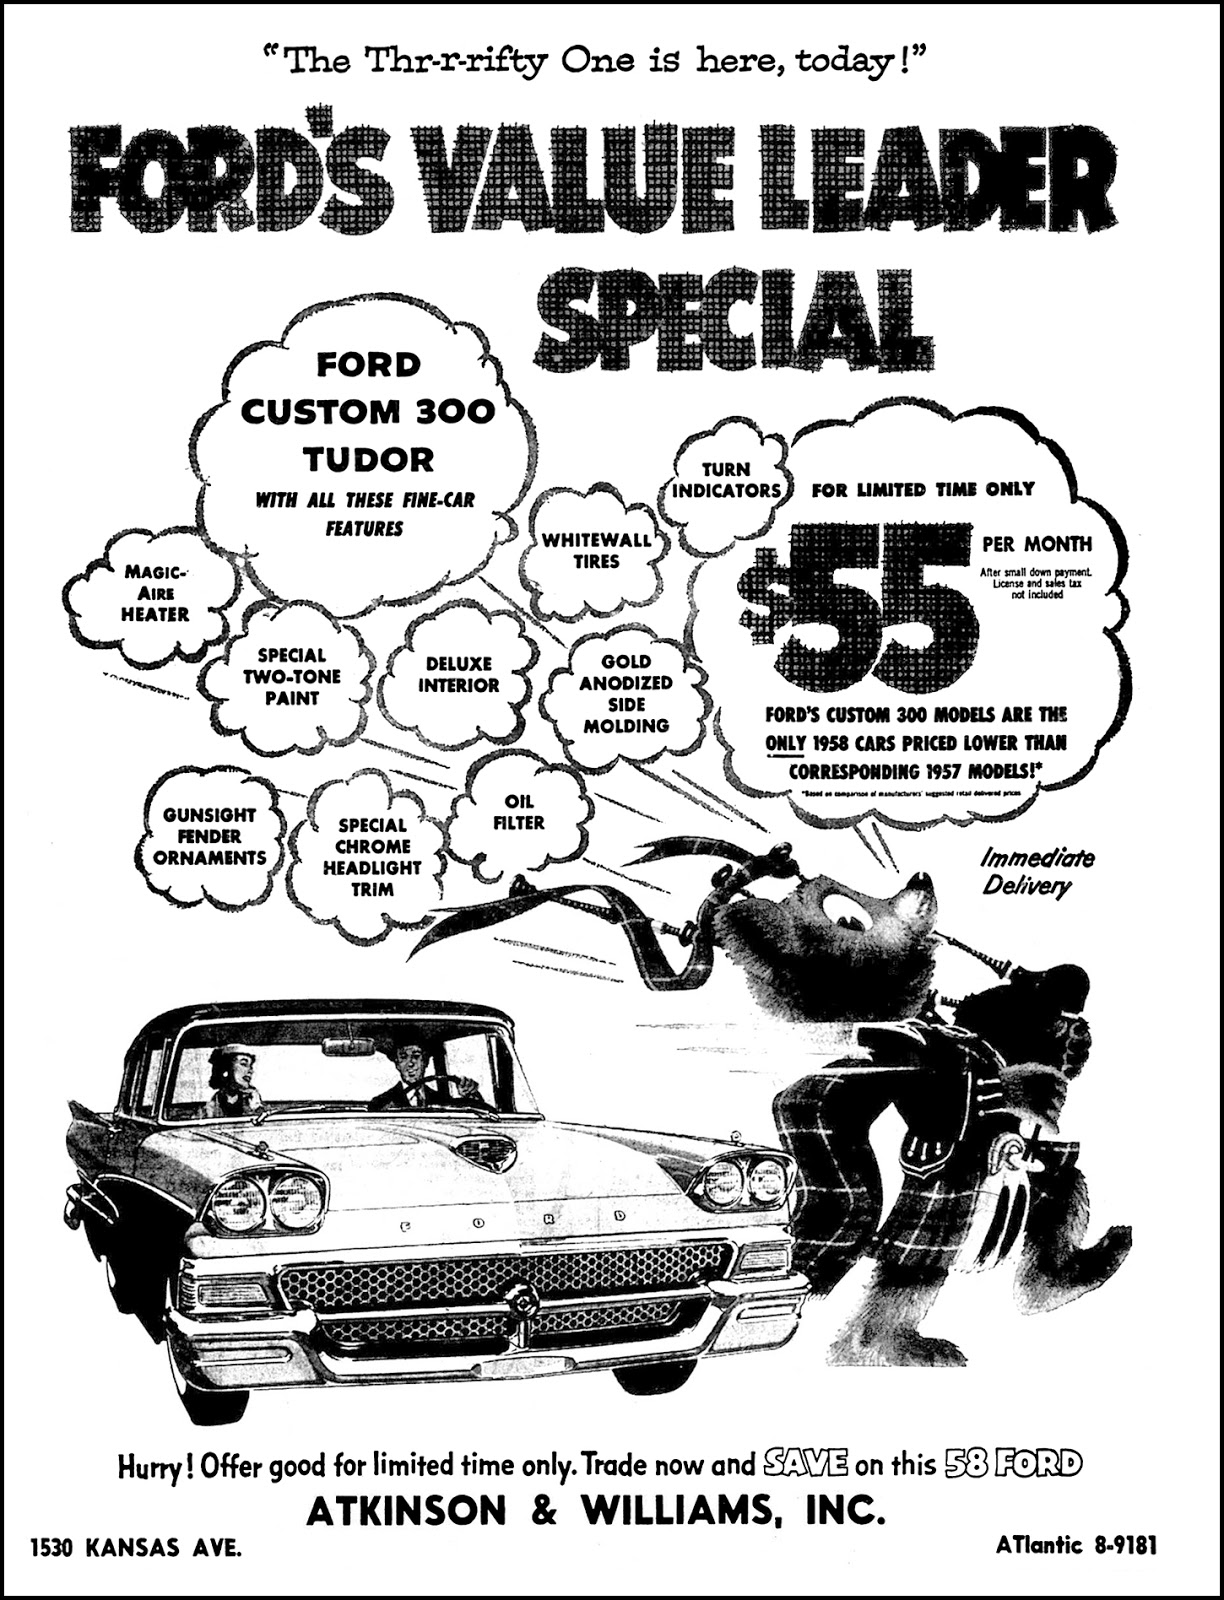 brady s bunch of lorain county nostalgia february 2018 61 Ford Starliner atkinson williams ford ad feb 24 1958